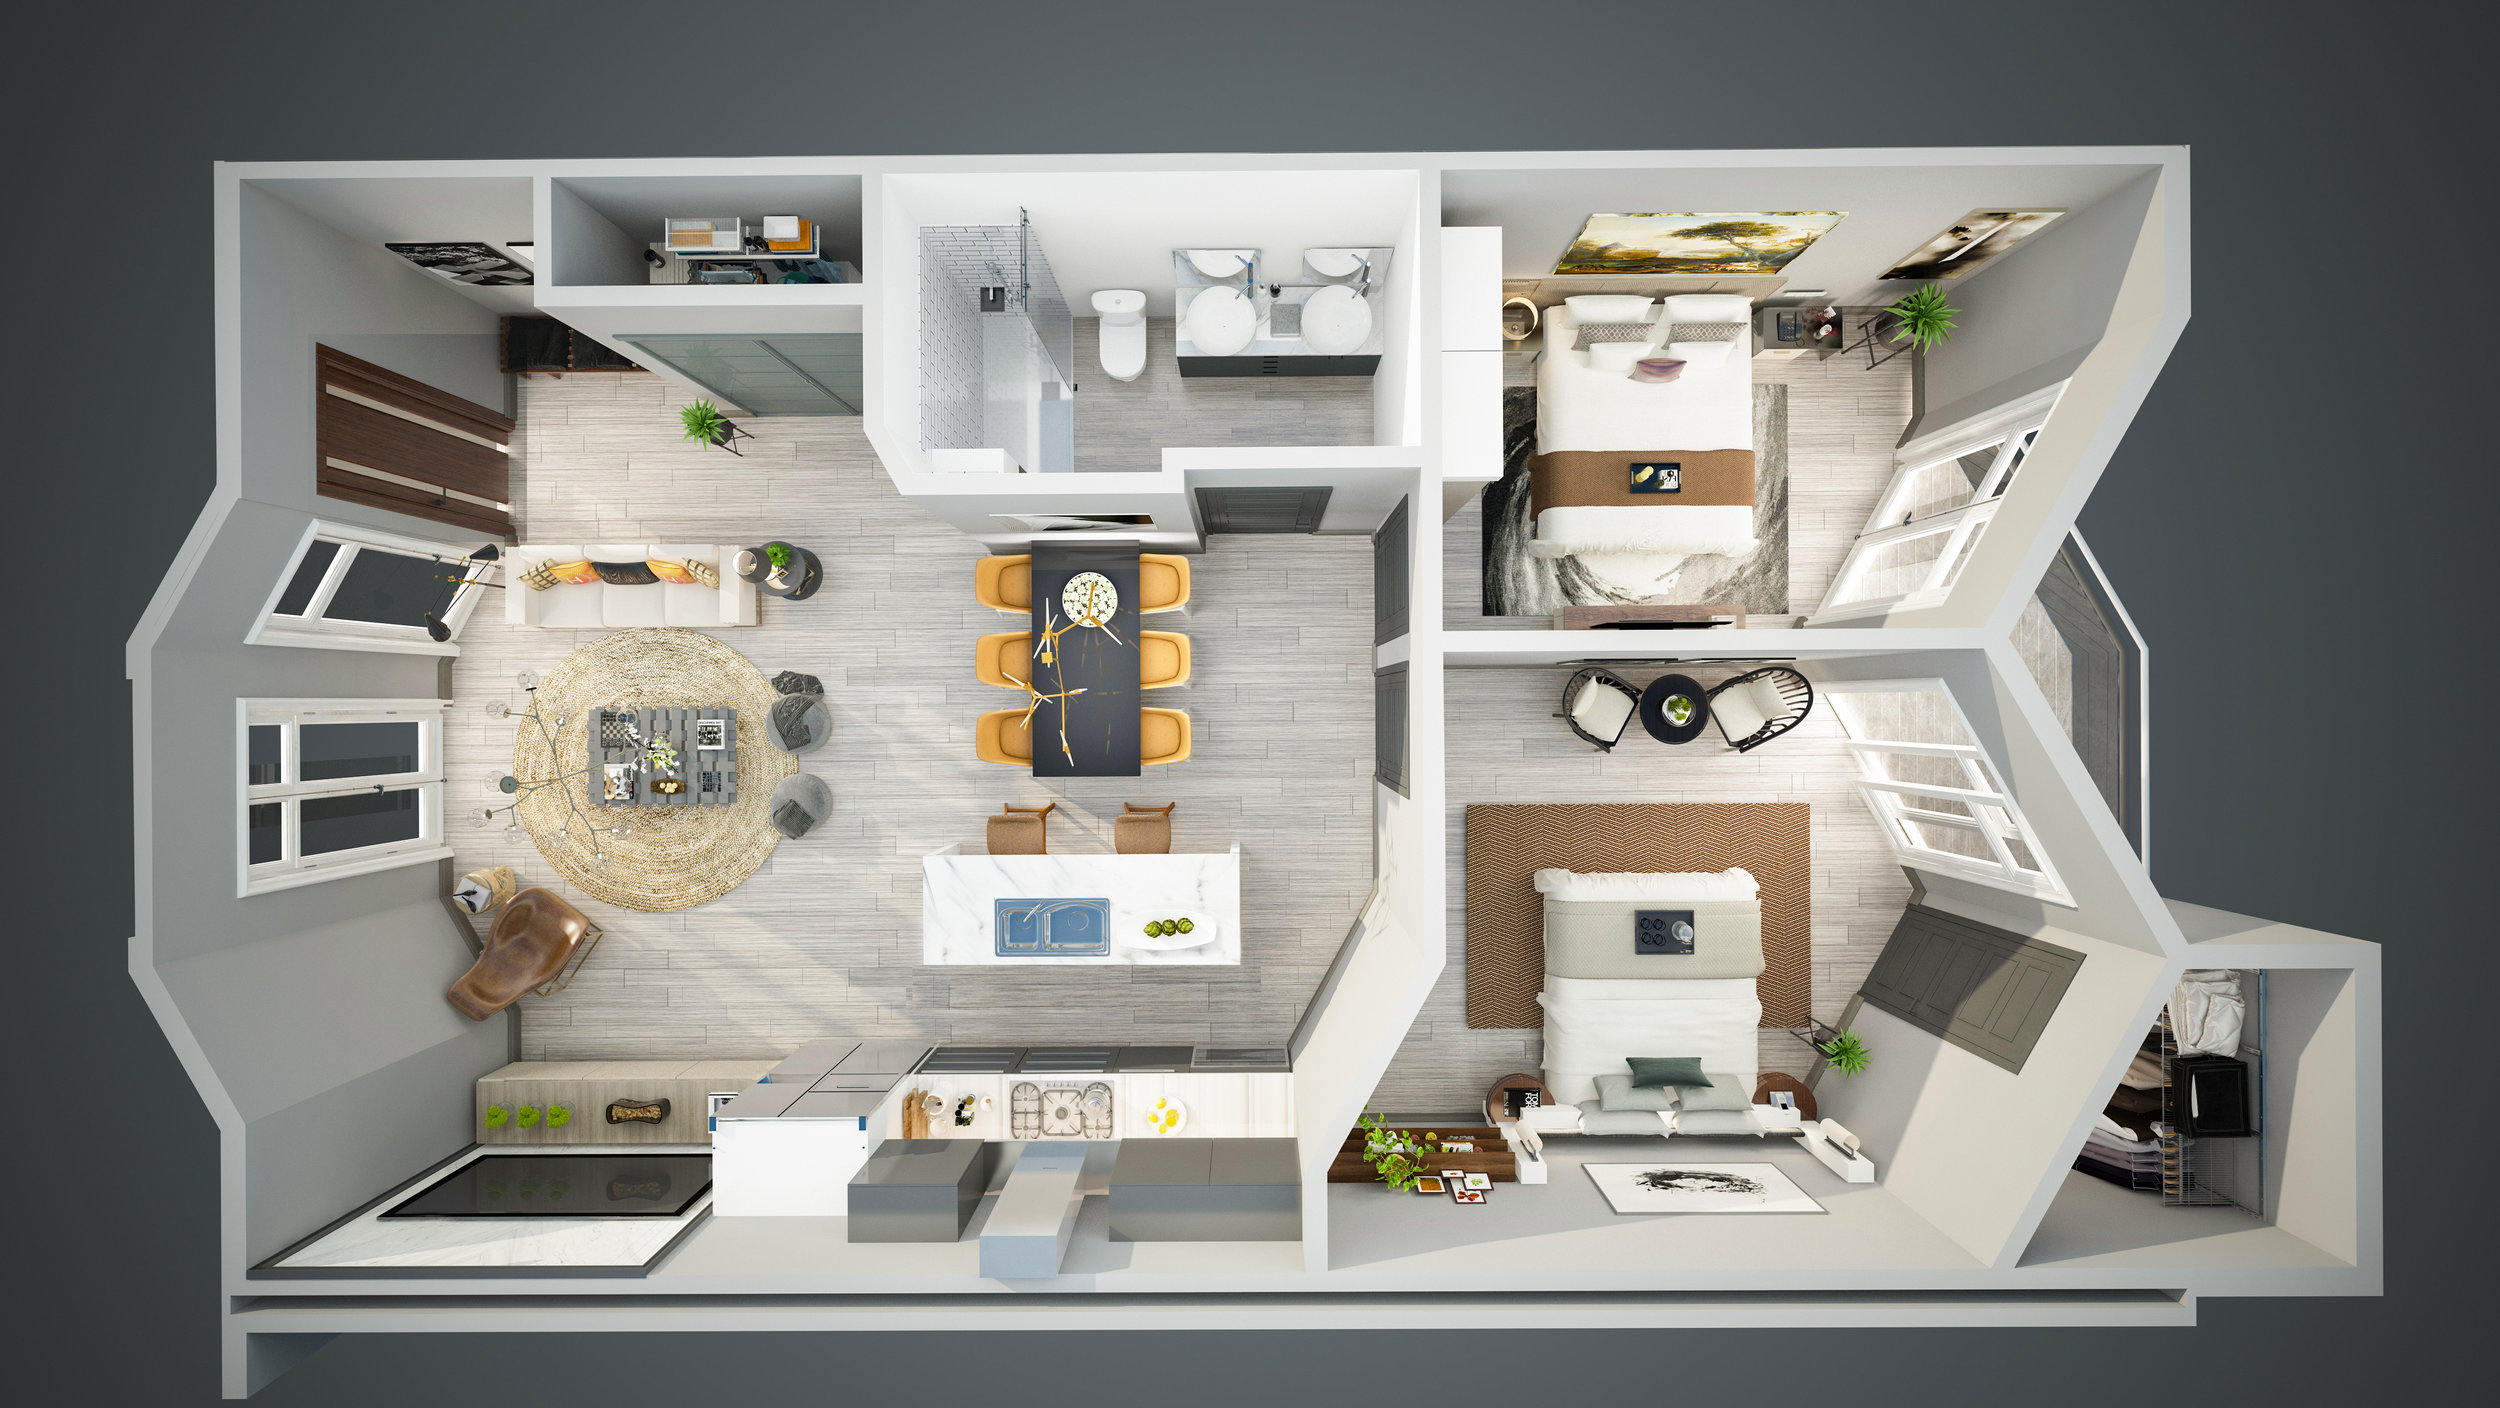 3-D floor plan. For illustration purposes only. Subject to change.